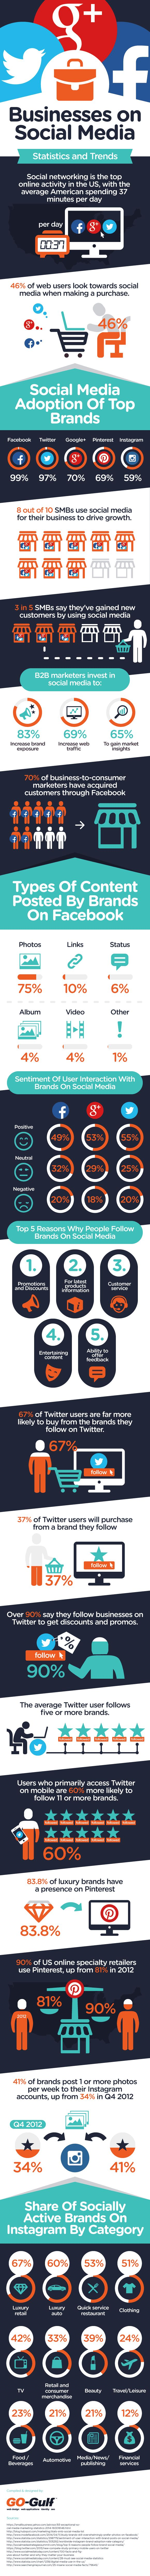 Businesses on Social Media: Statistics & Trends [INFOGRAPHIC]